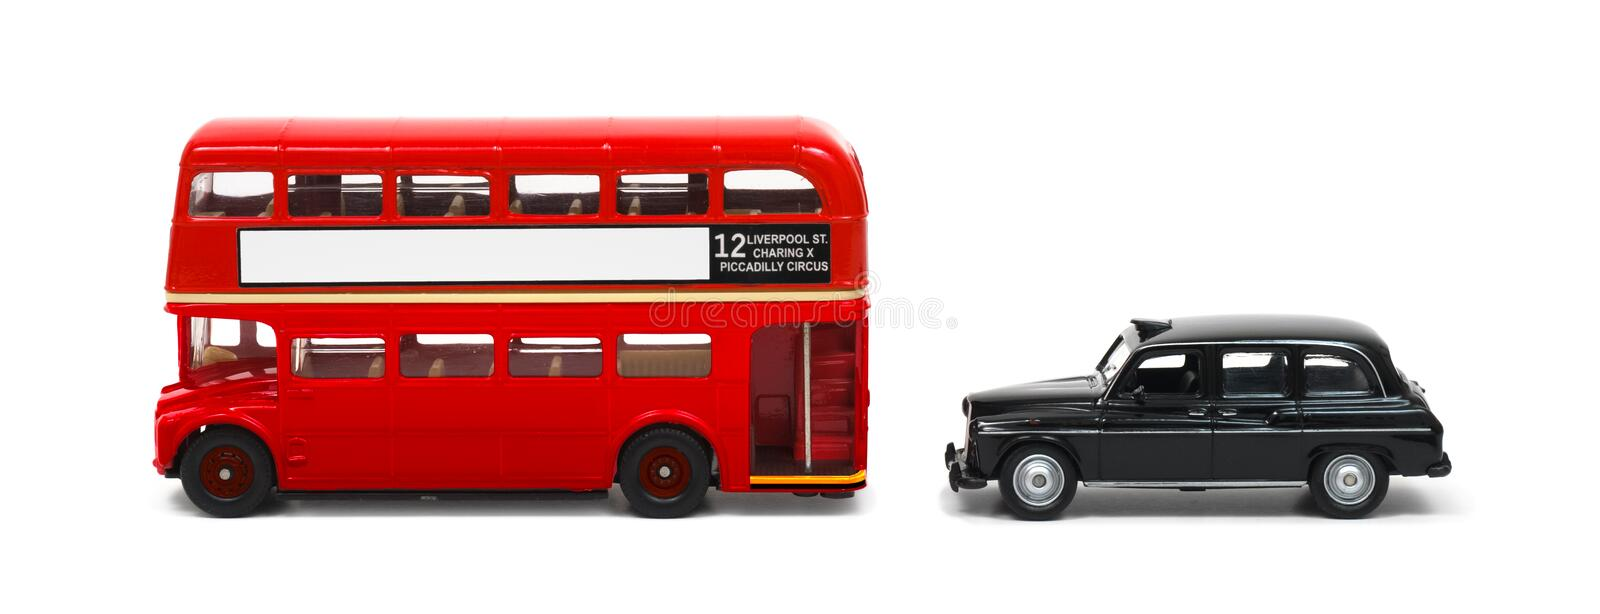 bus et taxi de londres photo stock image du tourisme 20518770. Black Bedroom Furniture Sets. Home Design Ideas